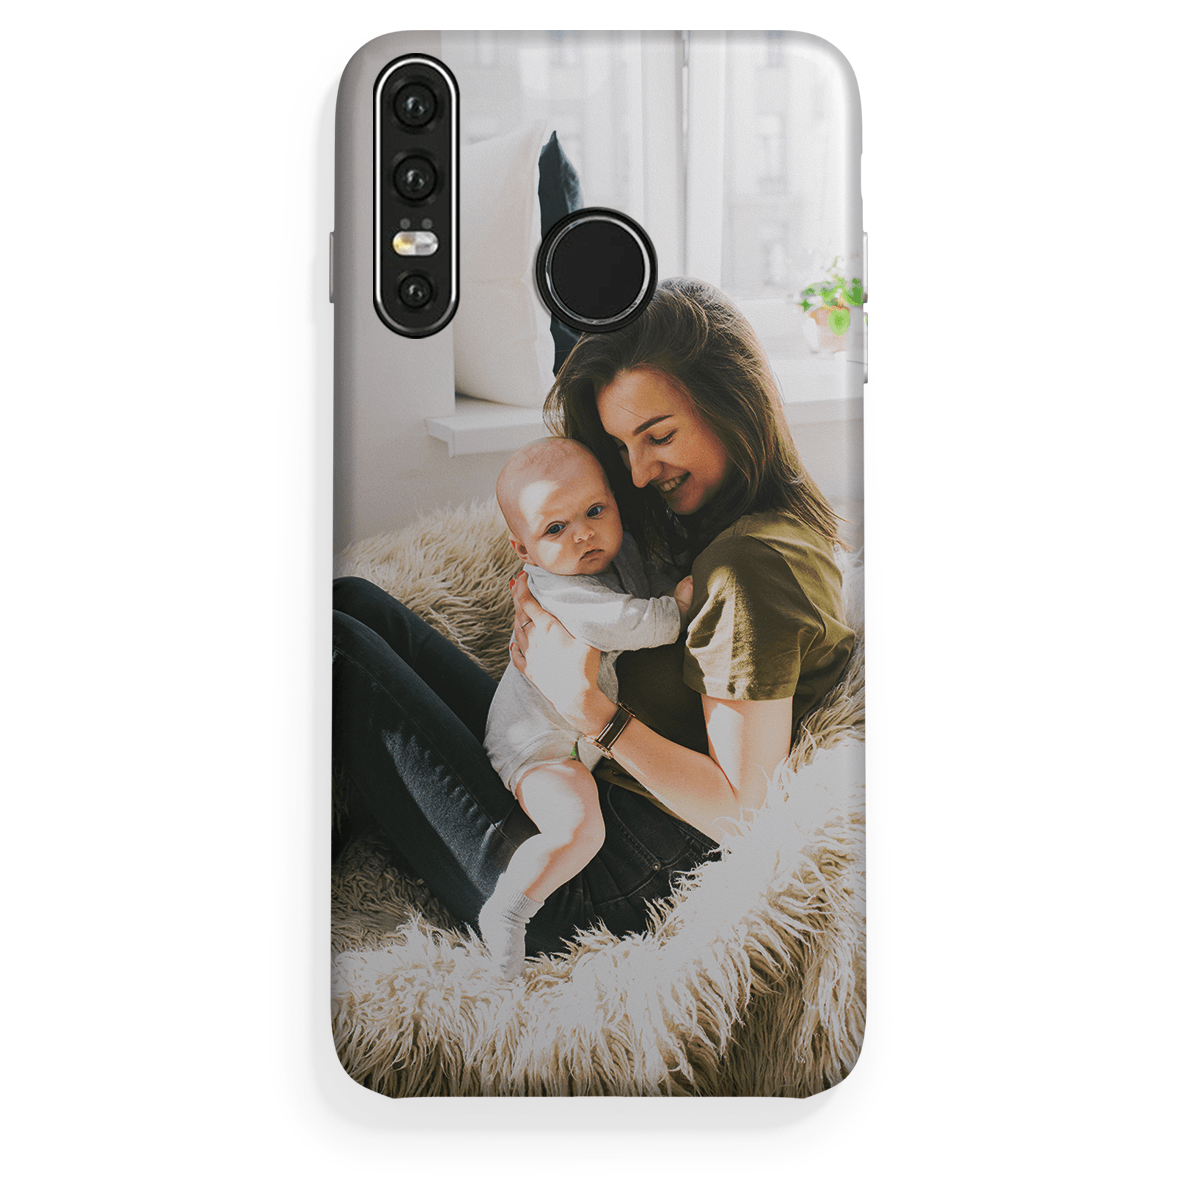 Personalised Case for Huawei P30 Lite